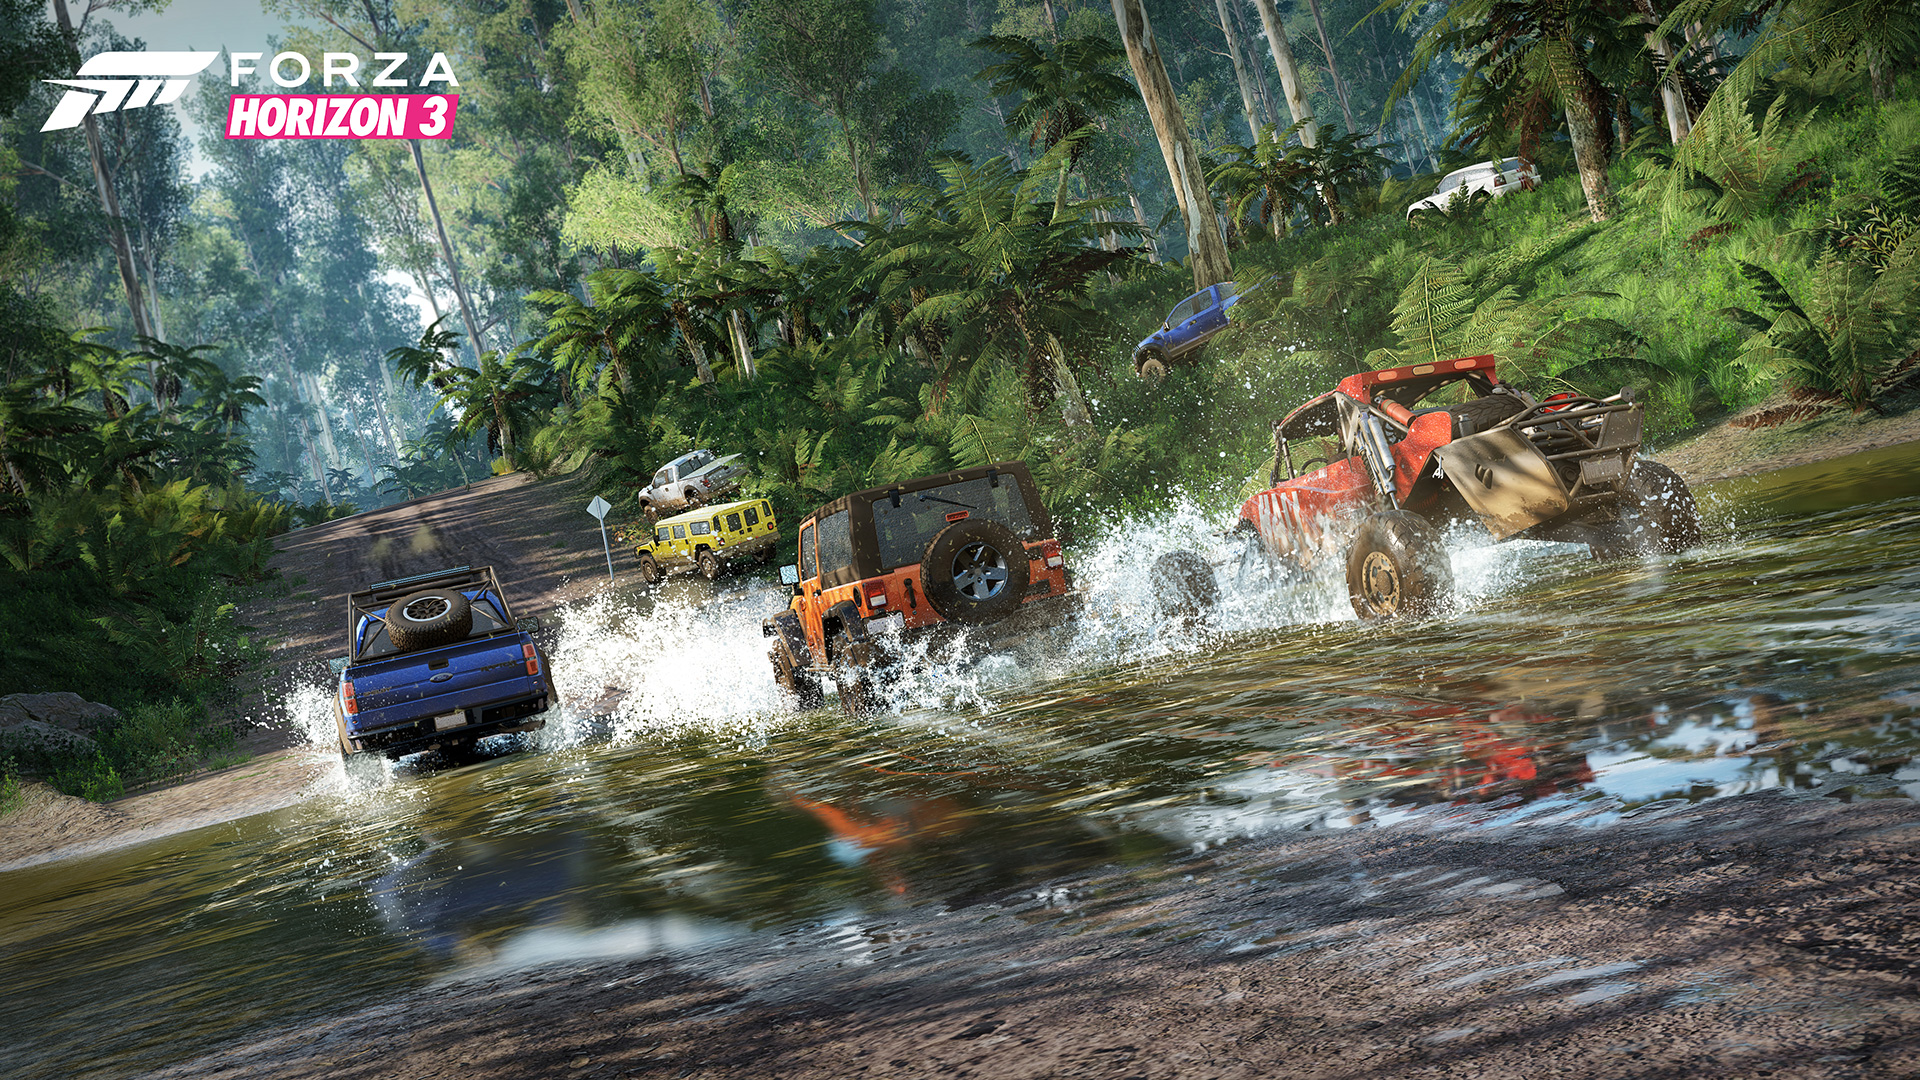 The water is supposed to make the vehicle react how it would in real life. Photo: forzamotorsport